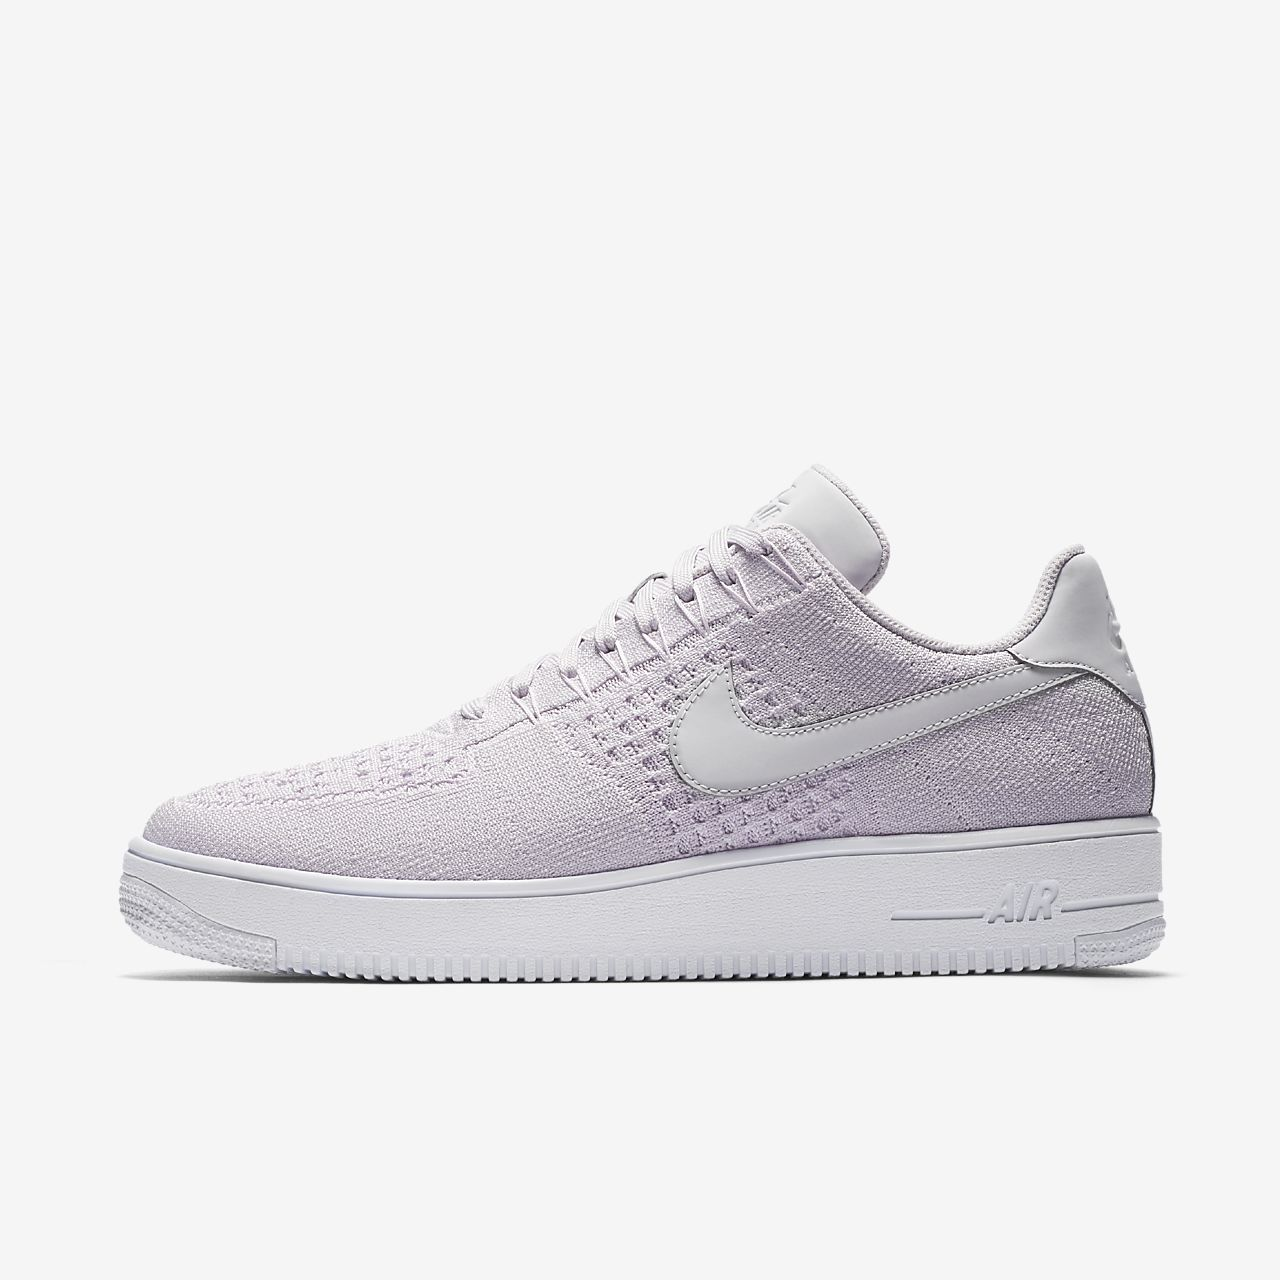 ... Nike Air Force 1 Ultra Flyknit Low Men's Shoe